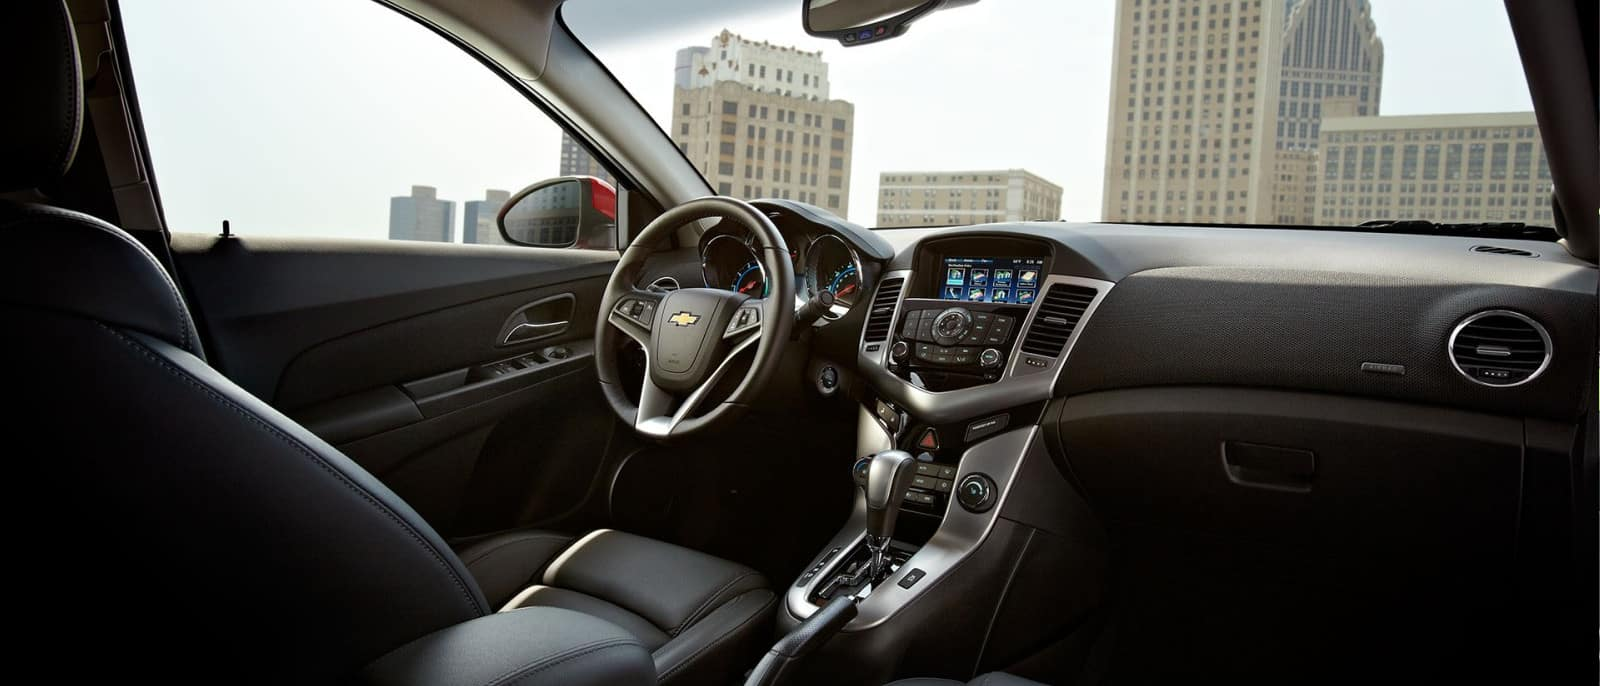 Exceptional 2014 Chevrolet Cruze Interior ...